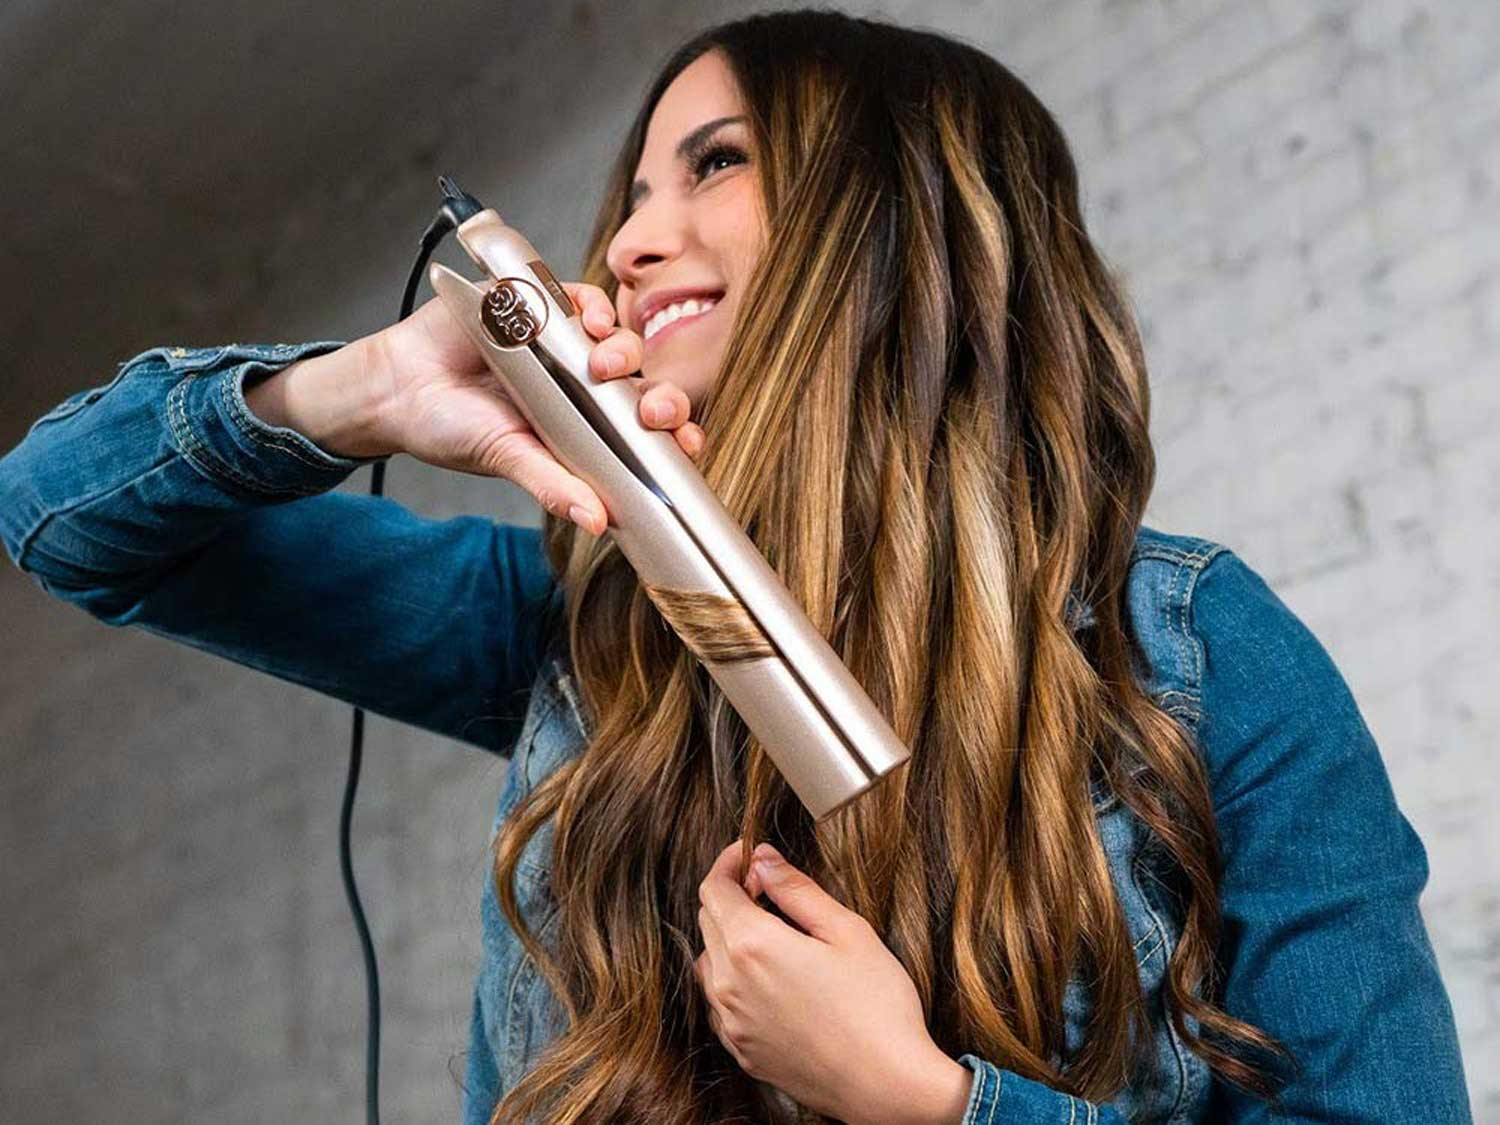 Woman curling hair with curling iron